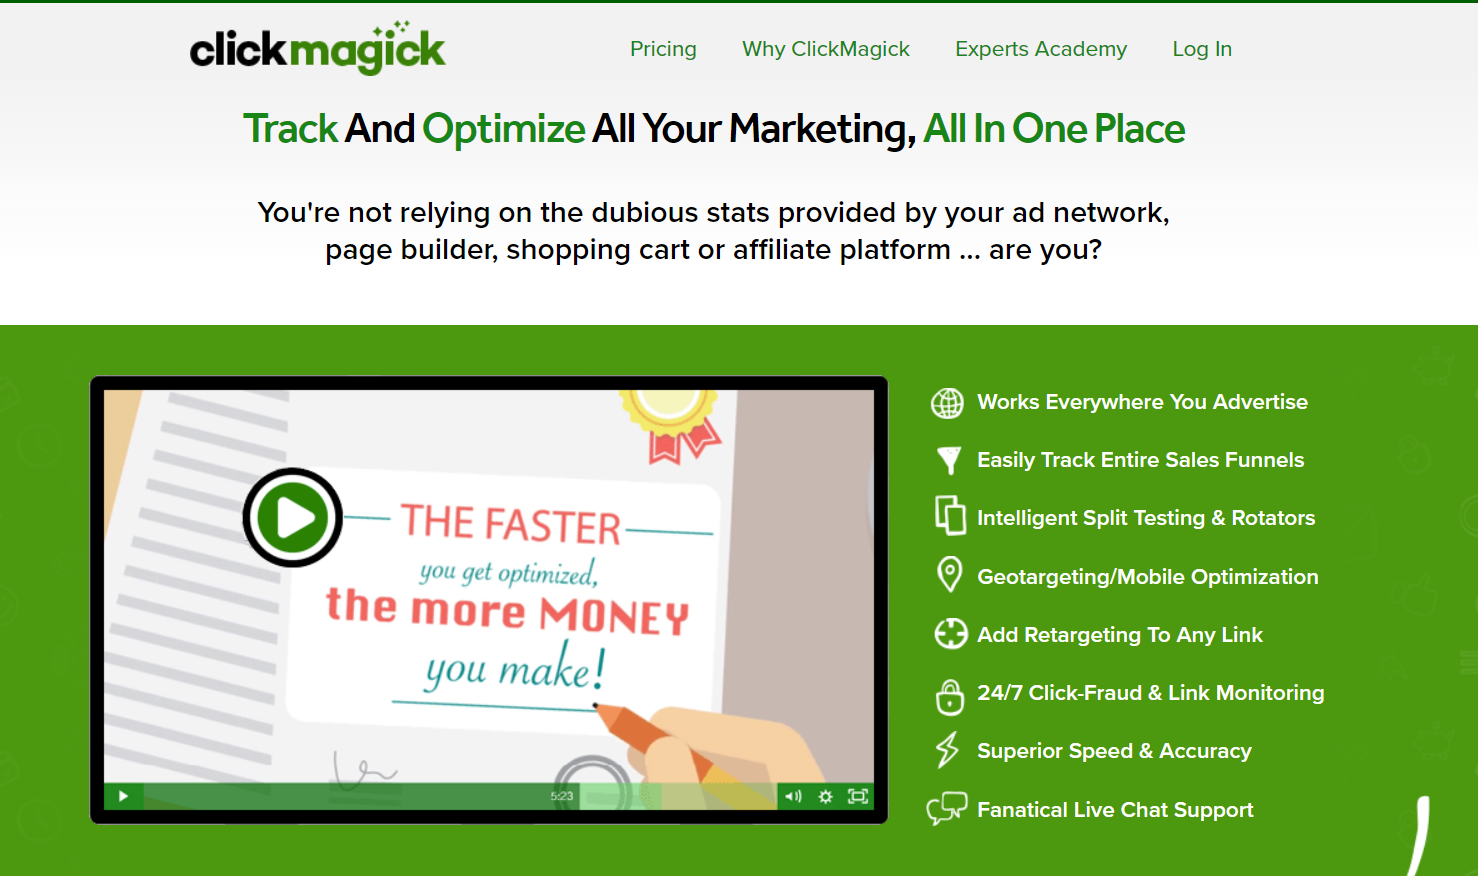 Clickmagick True Review & Its Only 4 Alternatives in 2021